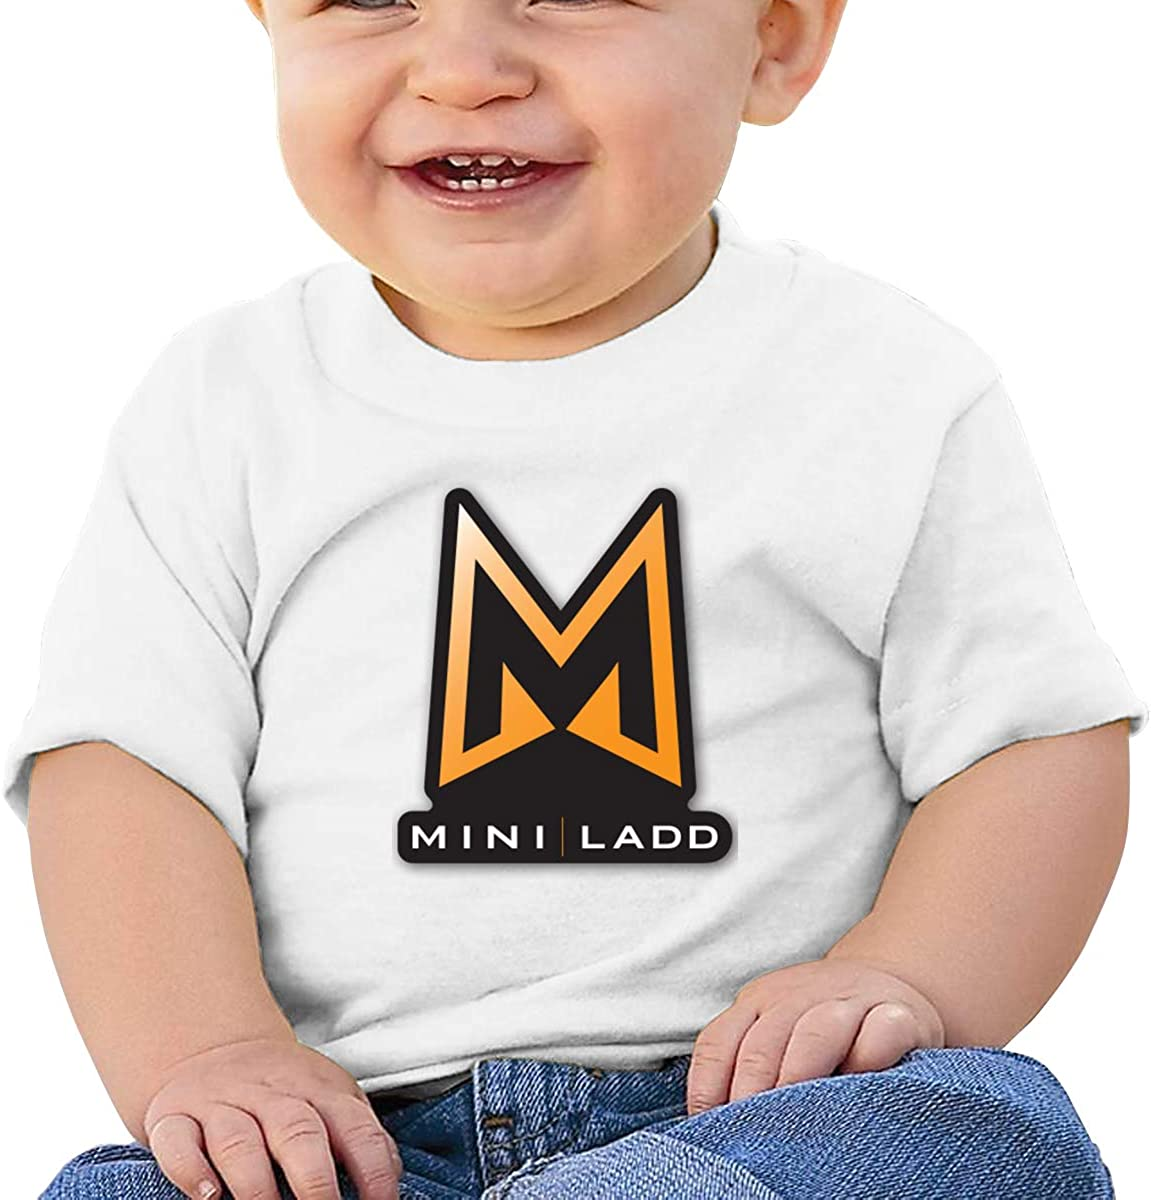 NOT Baby Mini-LADD Shirt Toddler Cotton Tee